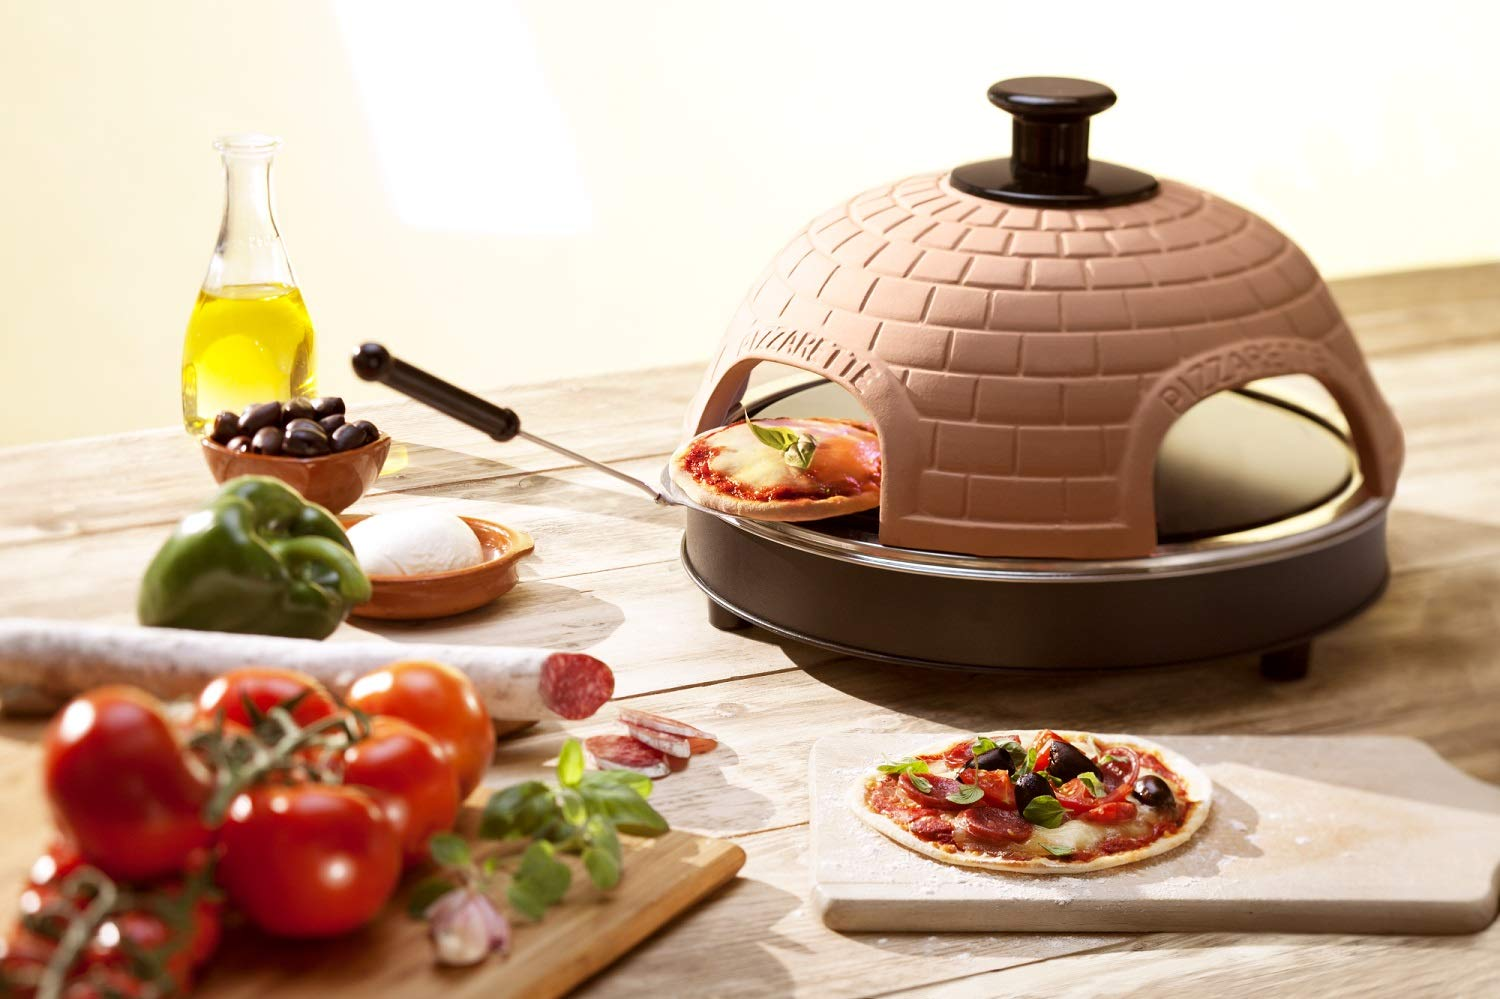 Pizzarette - The World's Funnest Pizza Oven - 4 Person Model - Countertop Pizza Oven - Europe's Best selling Pizza oven now available in the USA - Dual heating elements Tabletop Chefs 48020